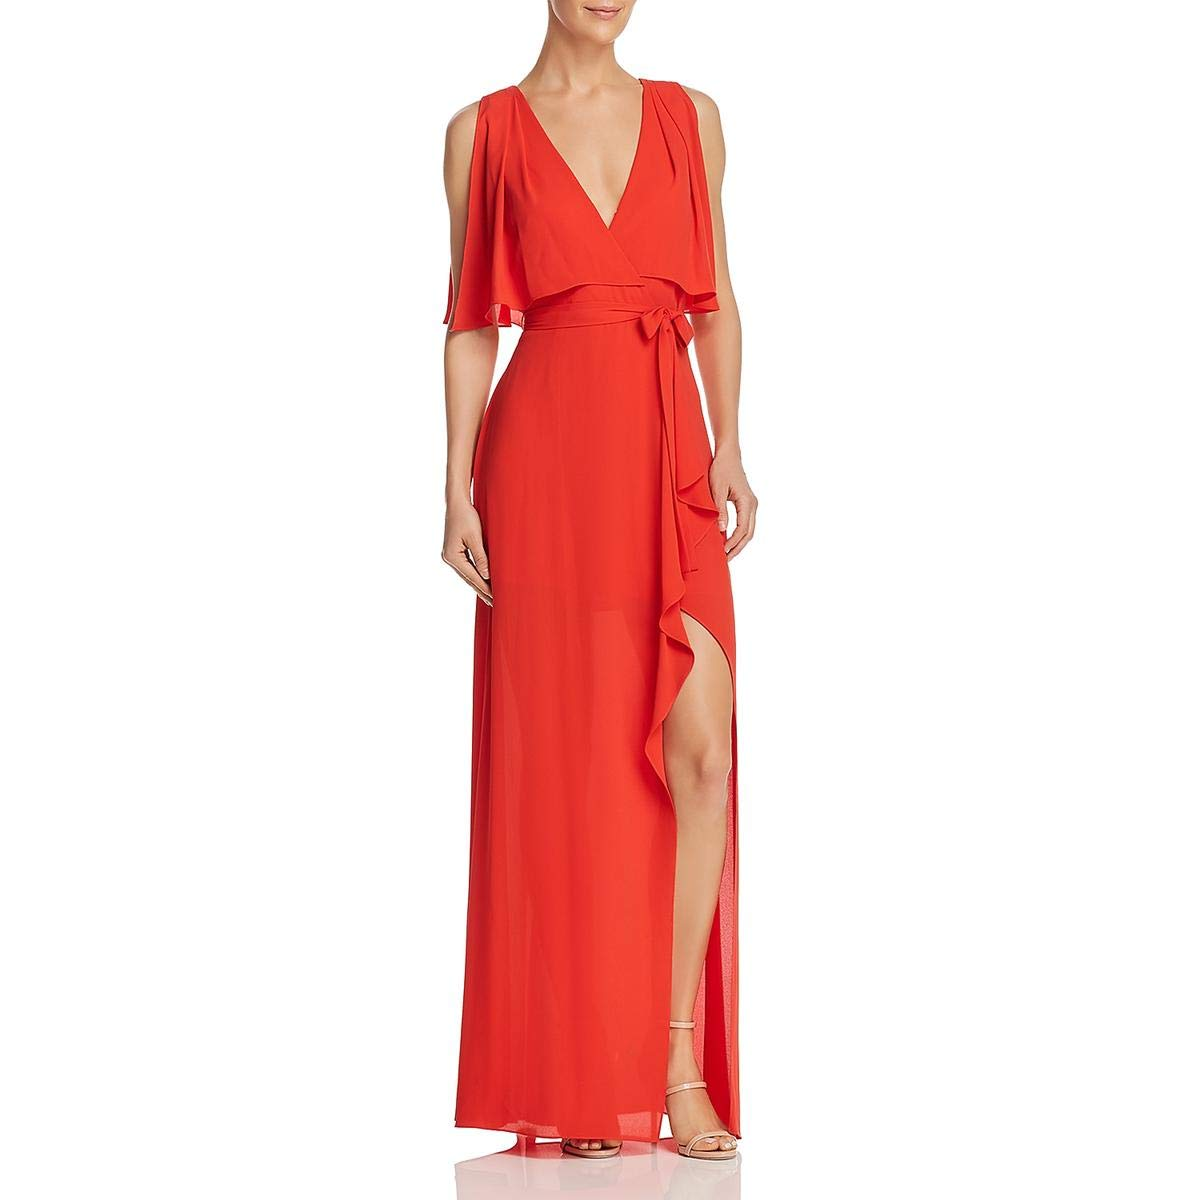 663bca78f Amazon.com: BCBG Max Azria Womens Fenella Faux-Wrap Sleeveless Evening Dress:  Clothing